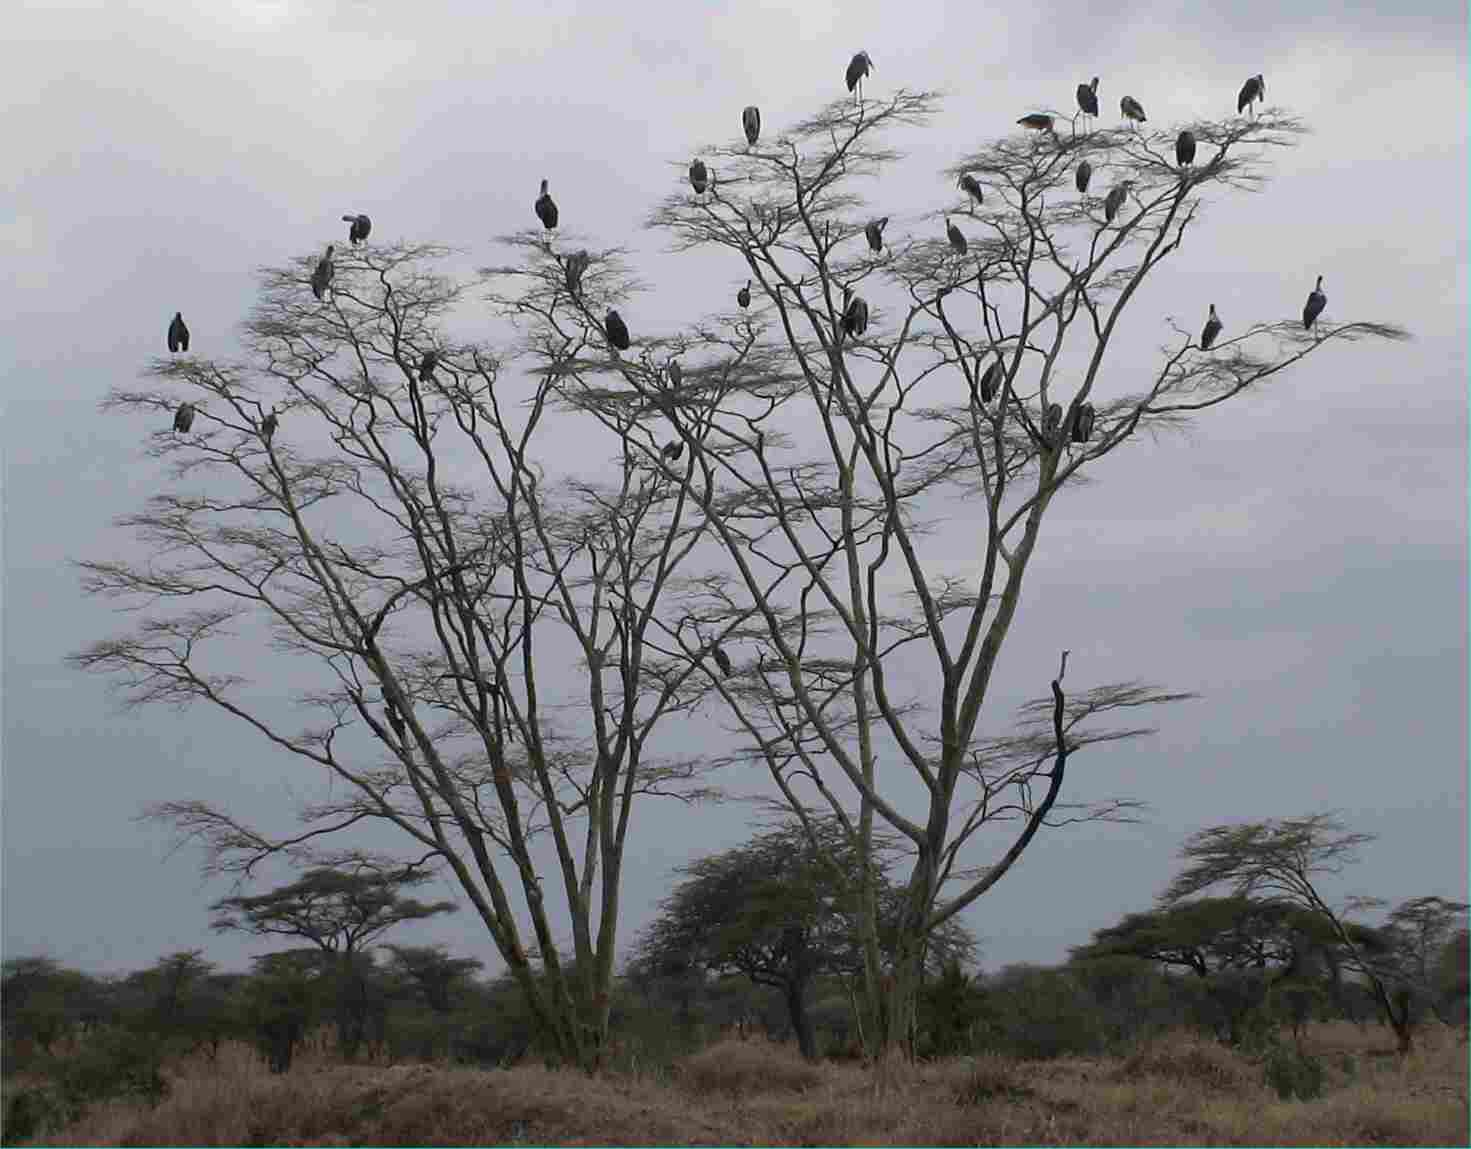 I think these are Marabou Storks sitting in the trees waiting for a turn at a nearby kill.  Photo by FG, Dec. 2005.